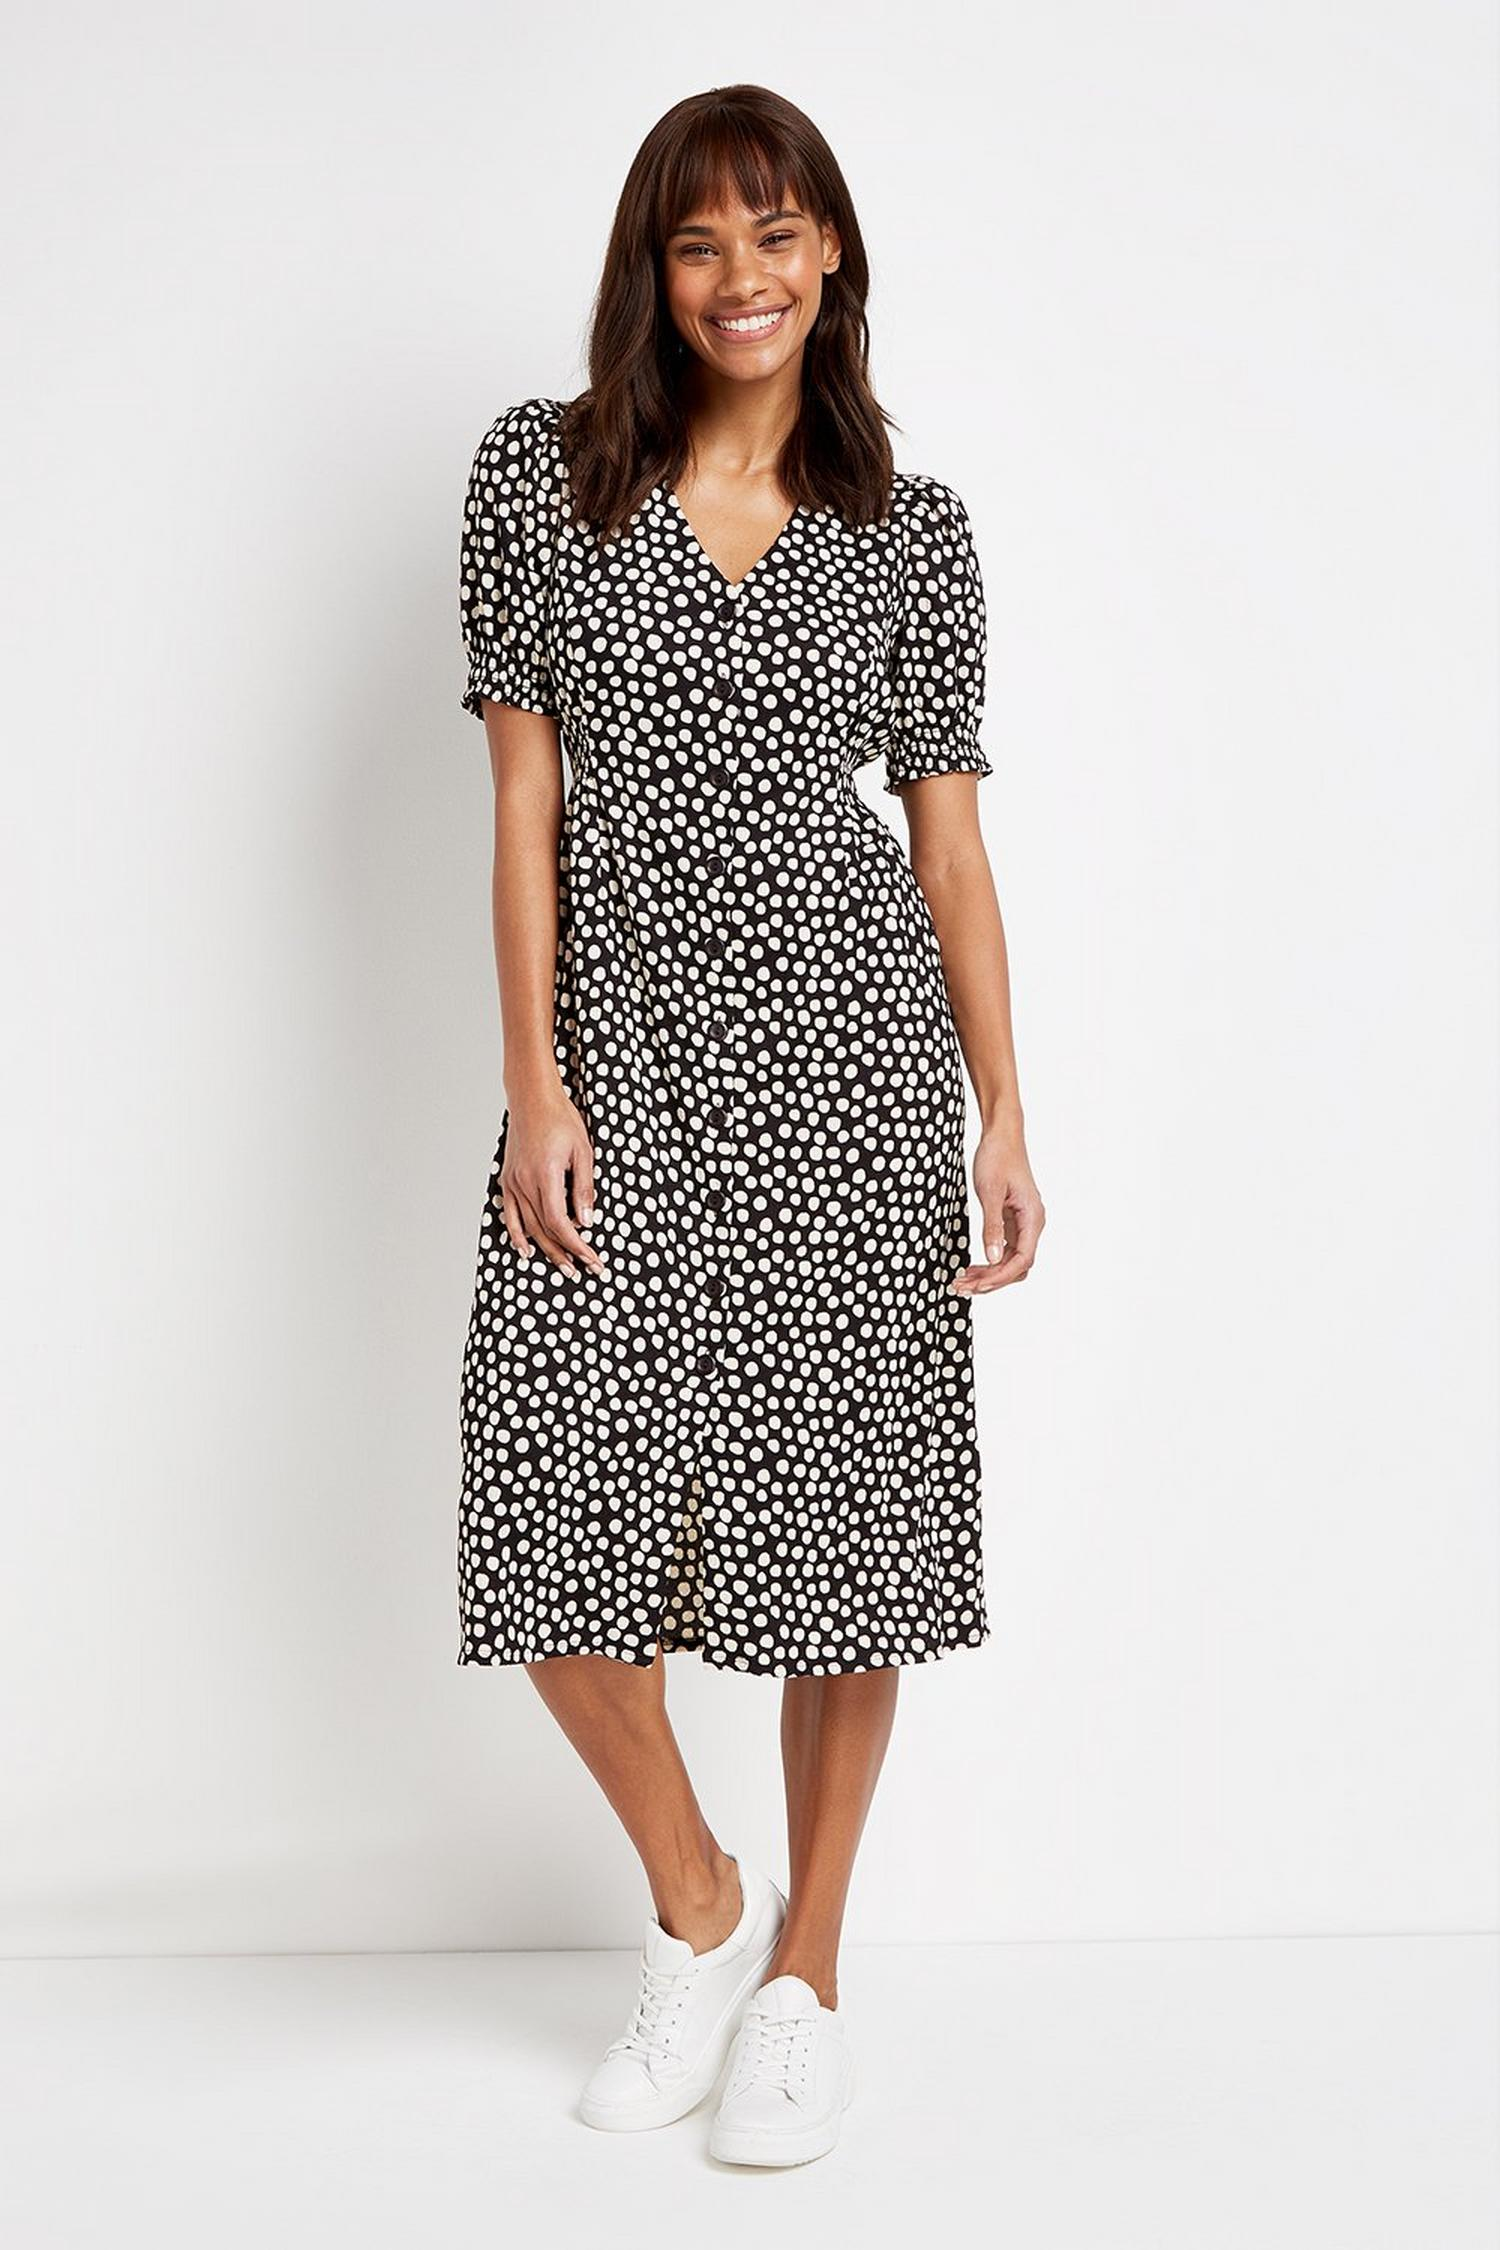 105 Black Polka Dot Midi Dress image number 1